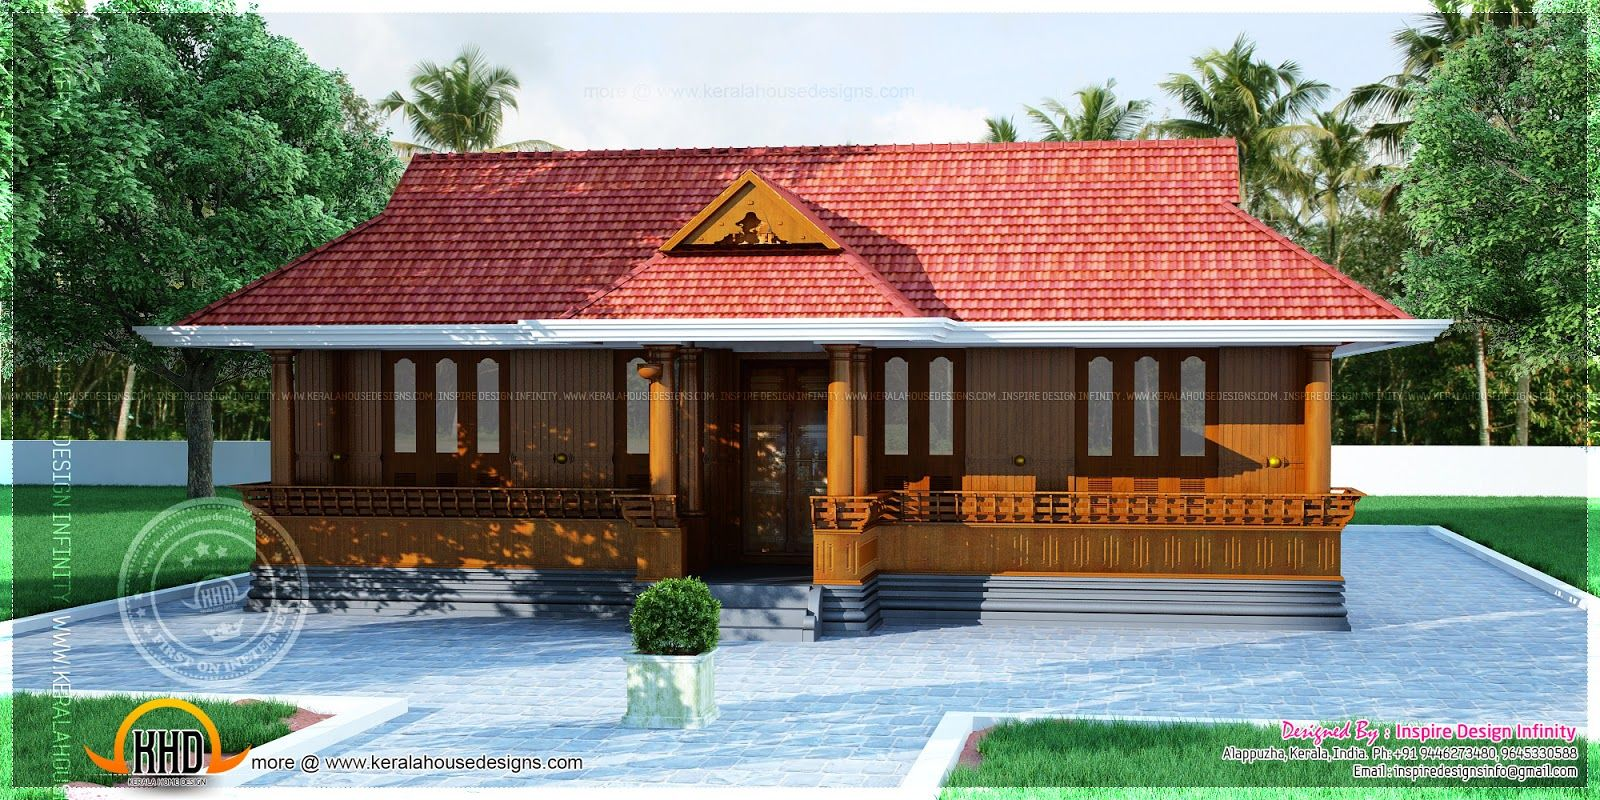 Kerala nalukettu home plan | Kerala house design, Village ... on 2 story house design, colonial style home design, kerala house interior design,